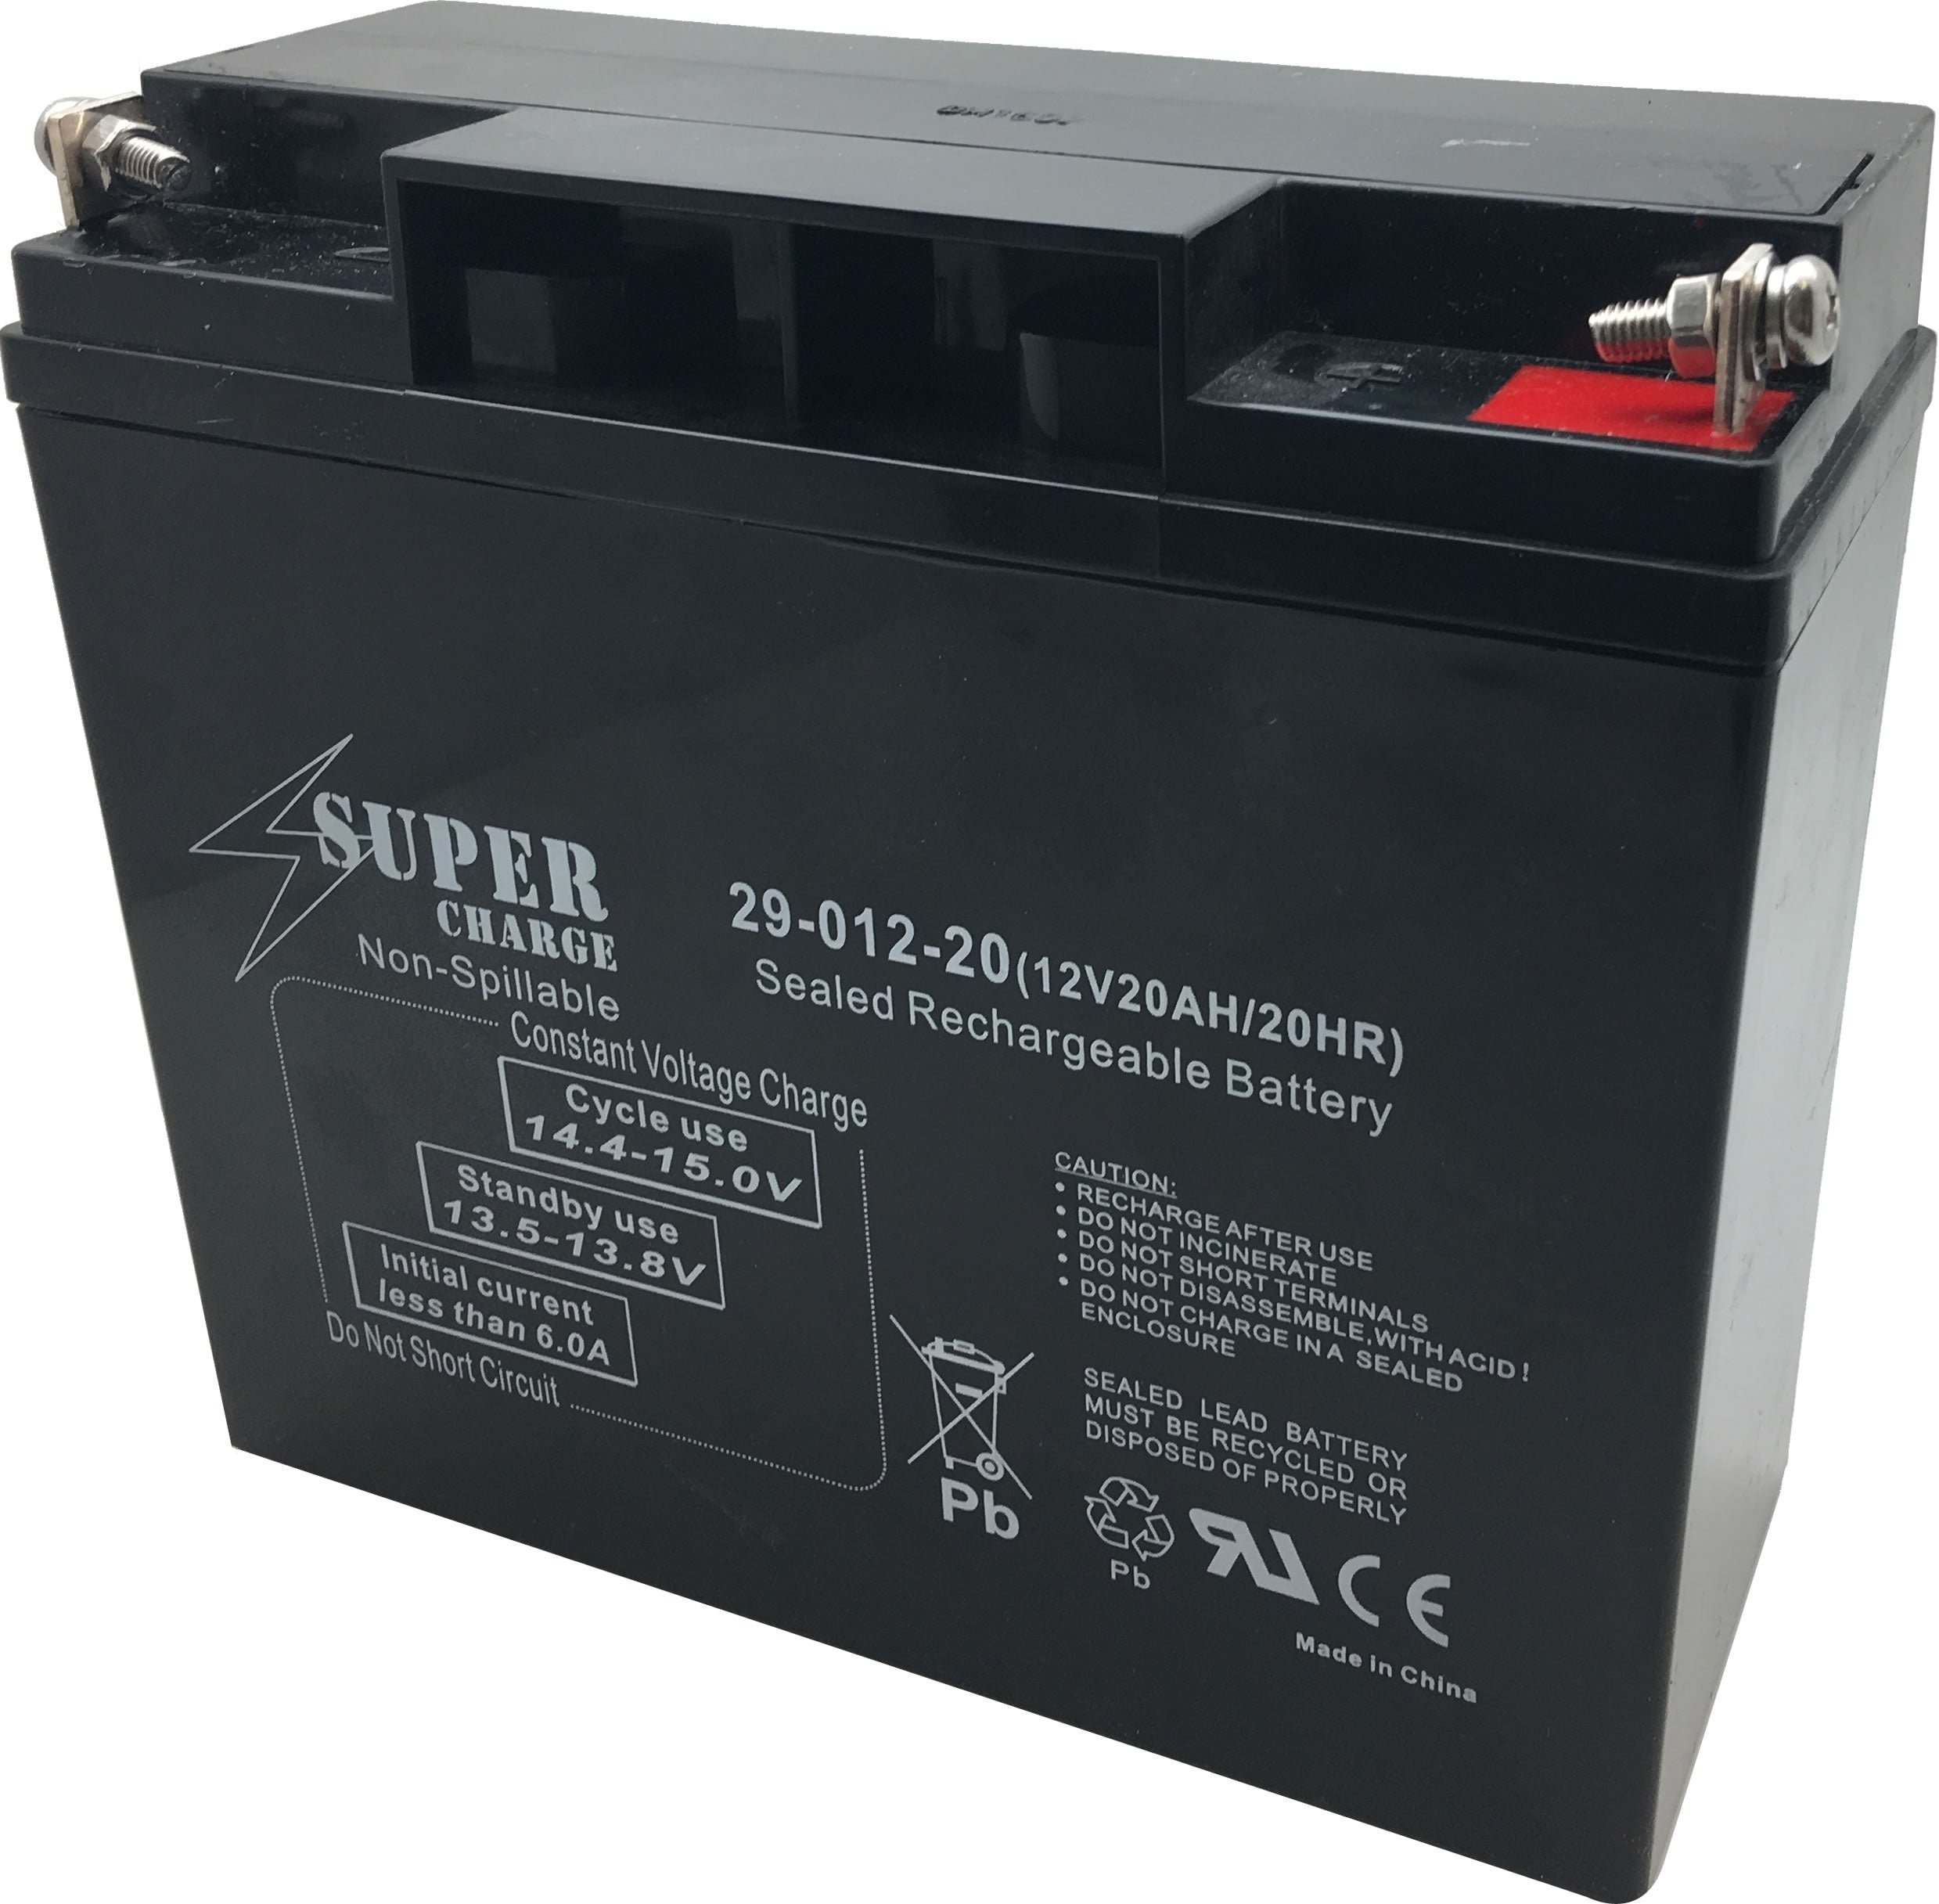 29-012-20 Rechargeable Battery 12V 20AH 20HR